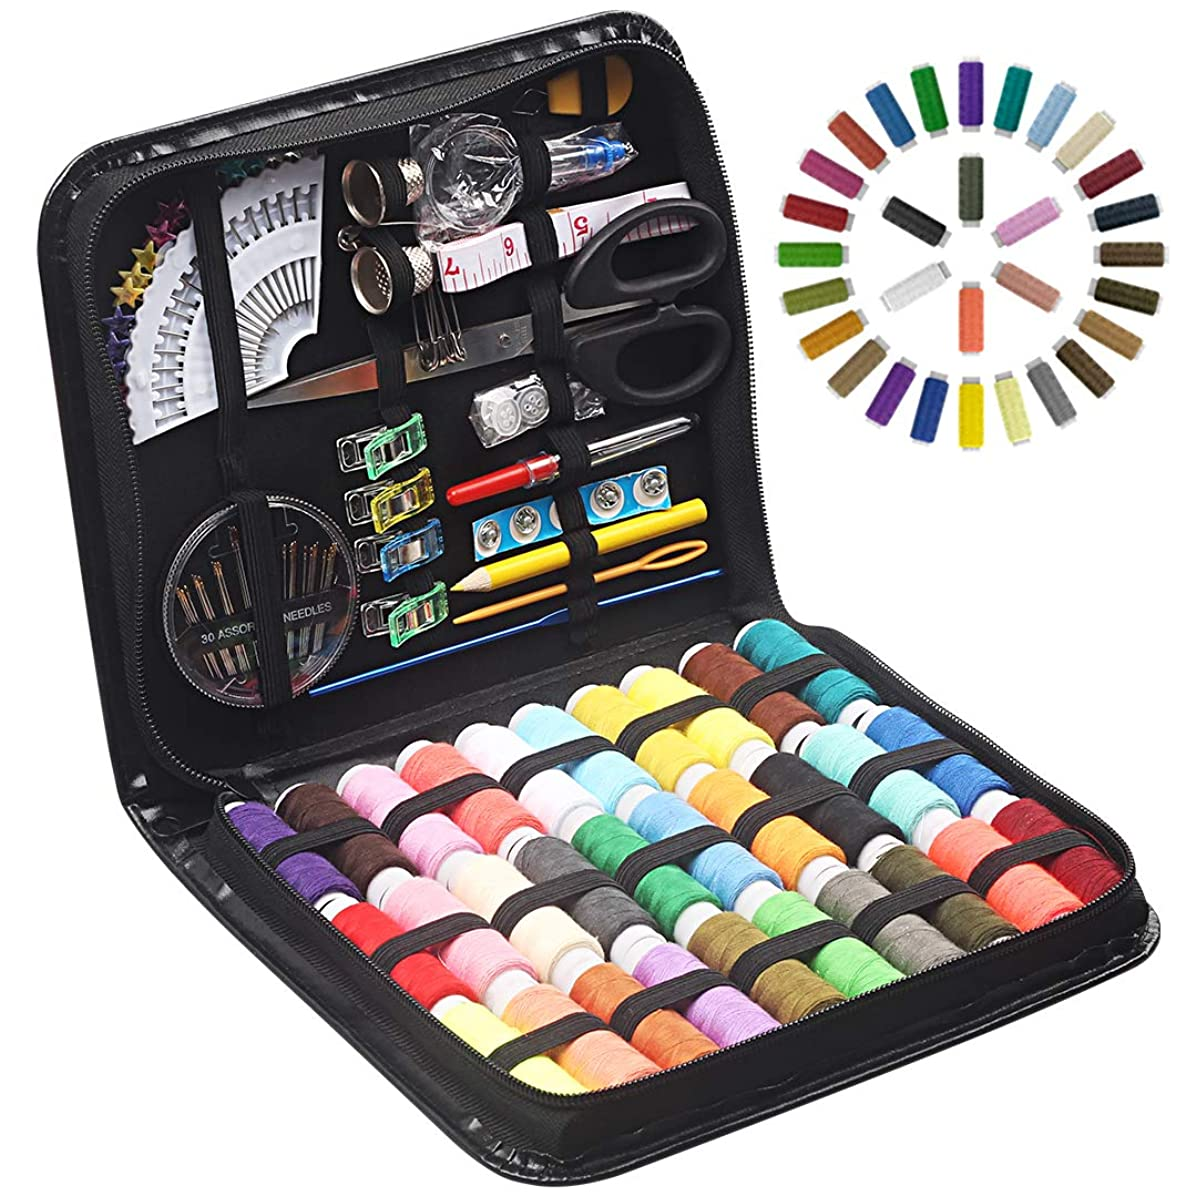 STURME Sewing KITS 112pcs Premium Sewing Tool Kit with PU Case 30 XL Thread Spools Perfect for Home Travel and Emergency Use